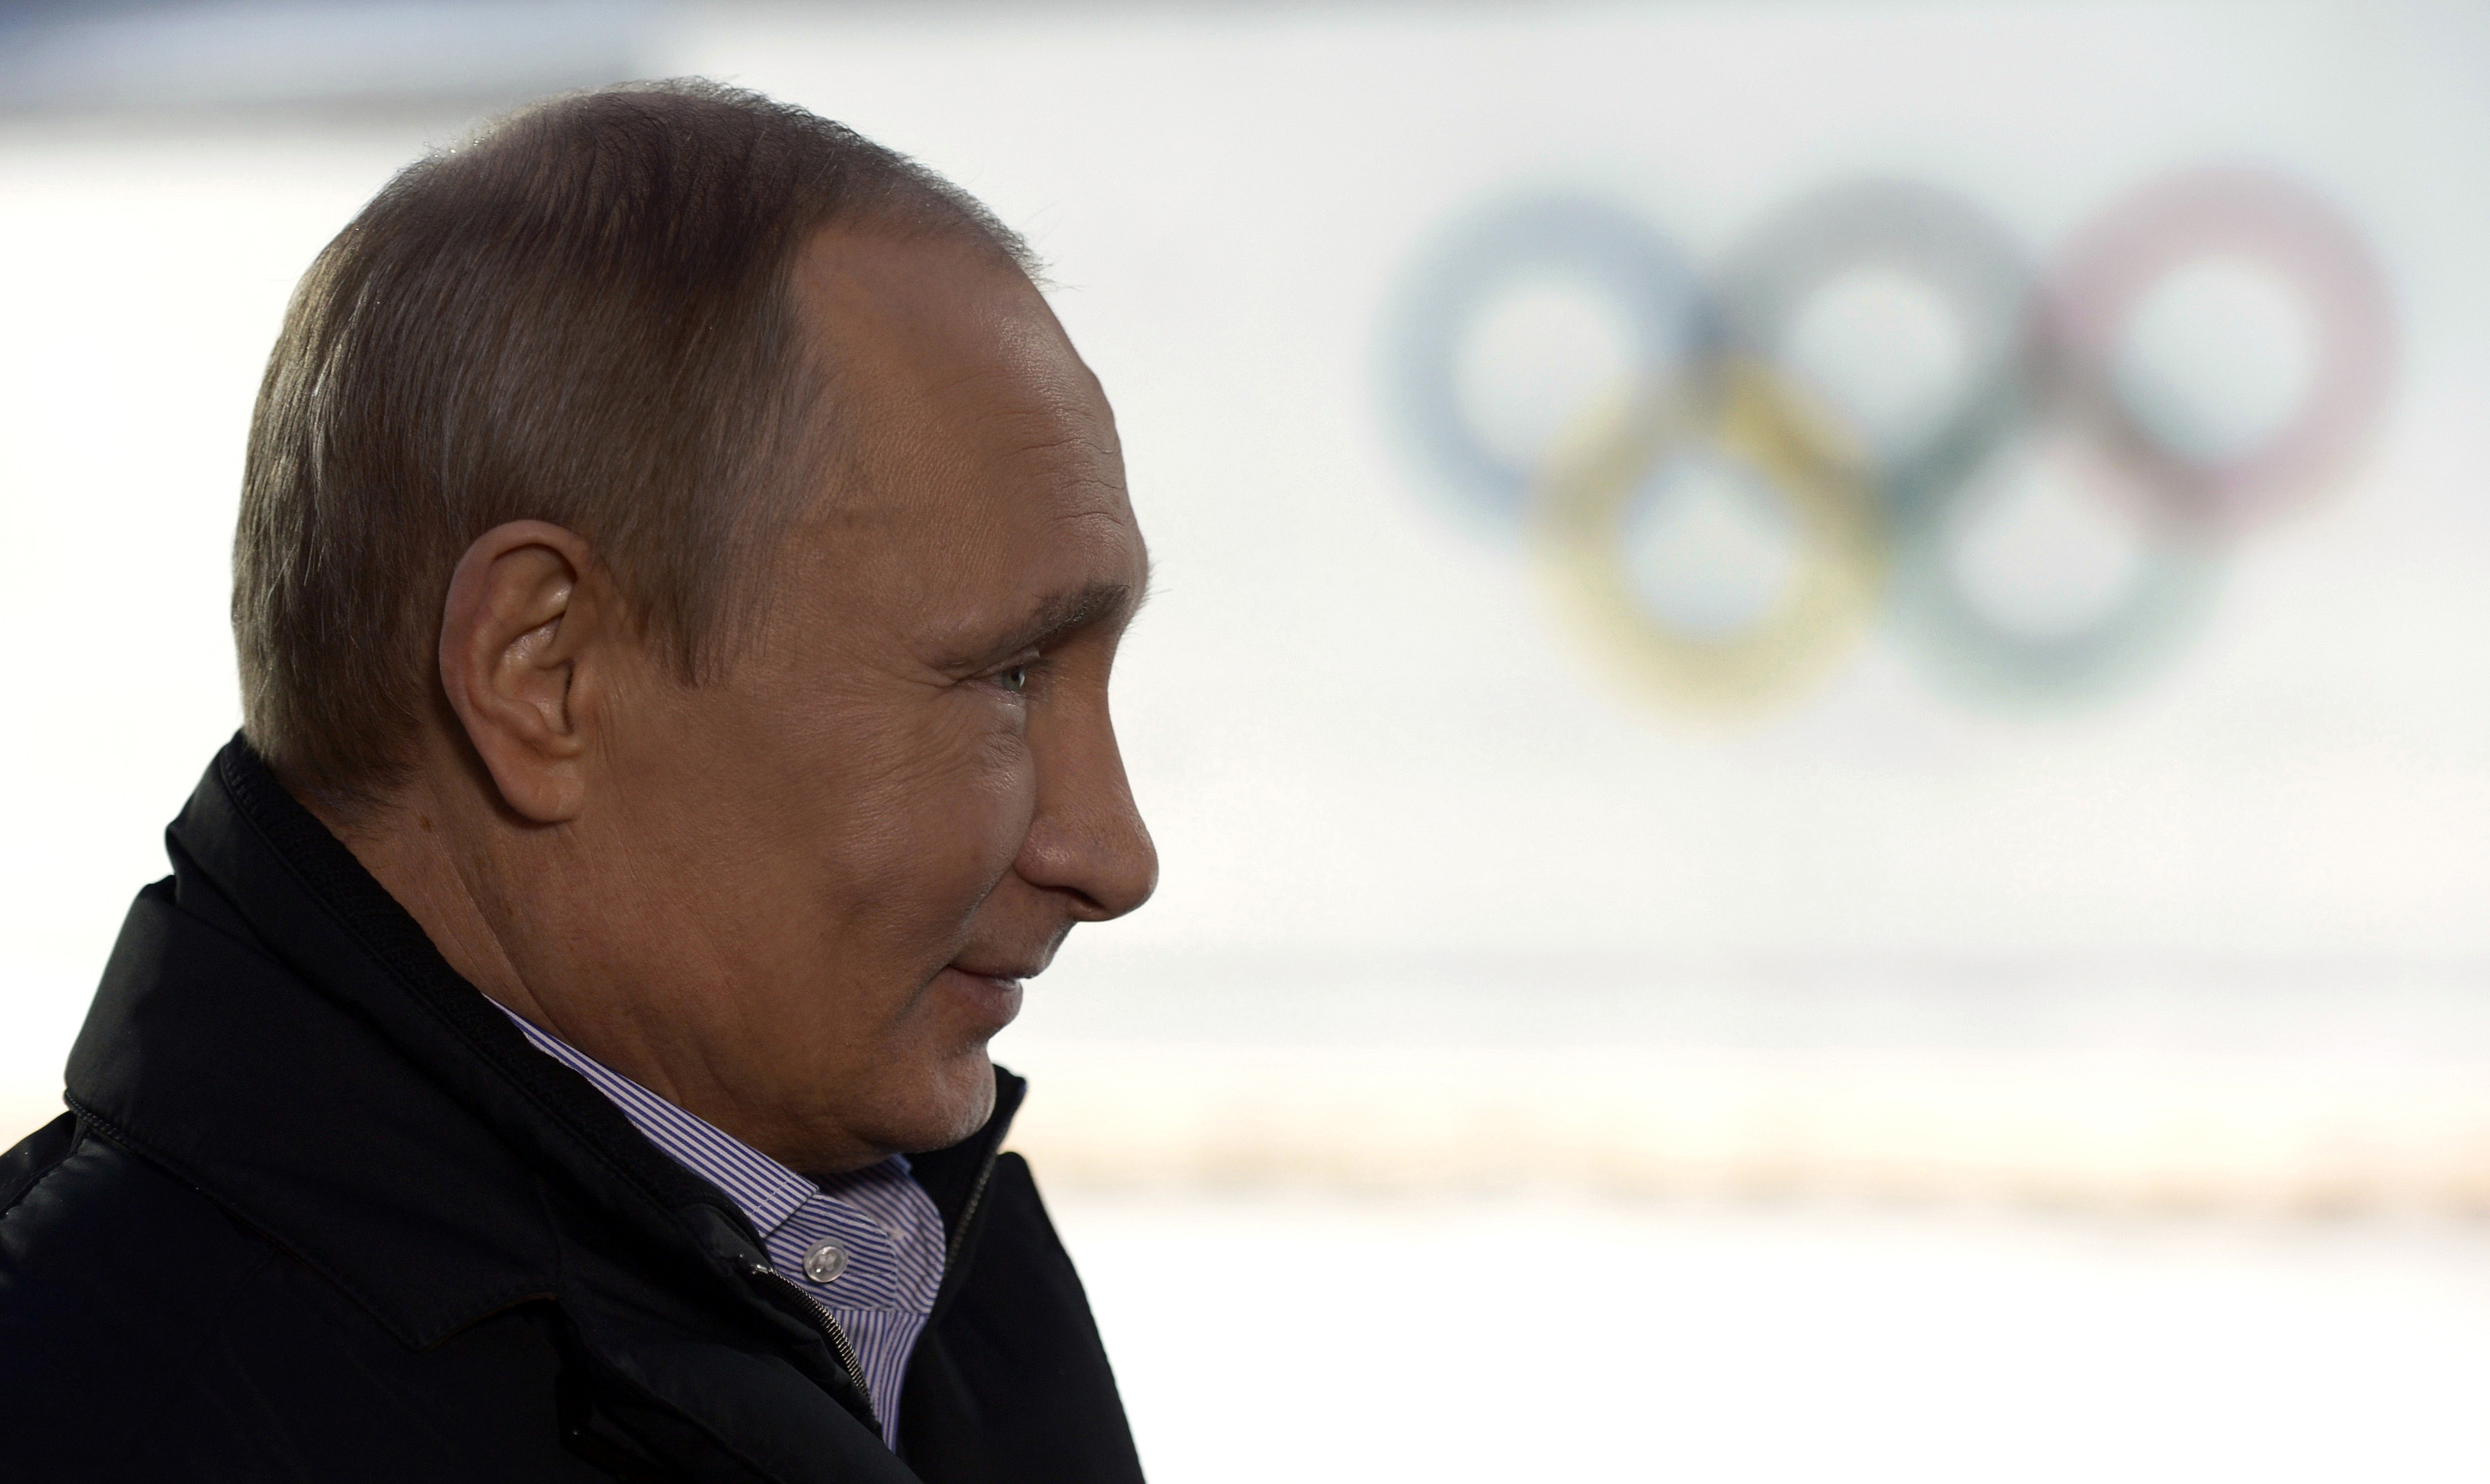 Russian President Vladimir Putin looks on during an interview in Sochi on Jan. 19 2014 before his country hosted the Winter Olympics. Russia has banned from the 2018 Games for doping